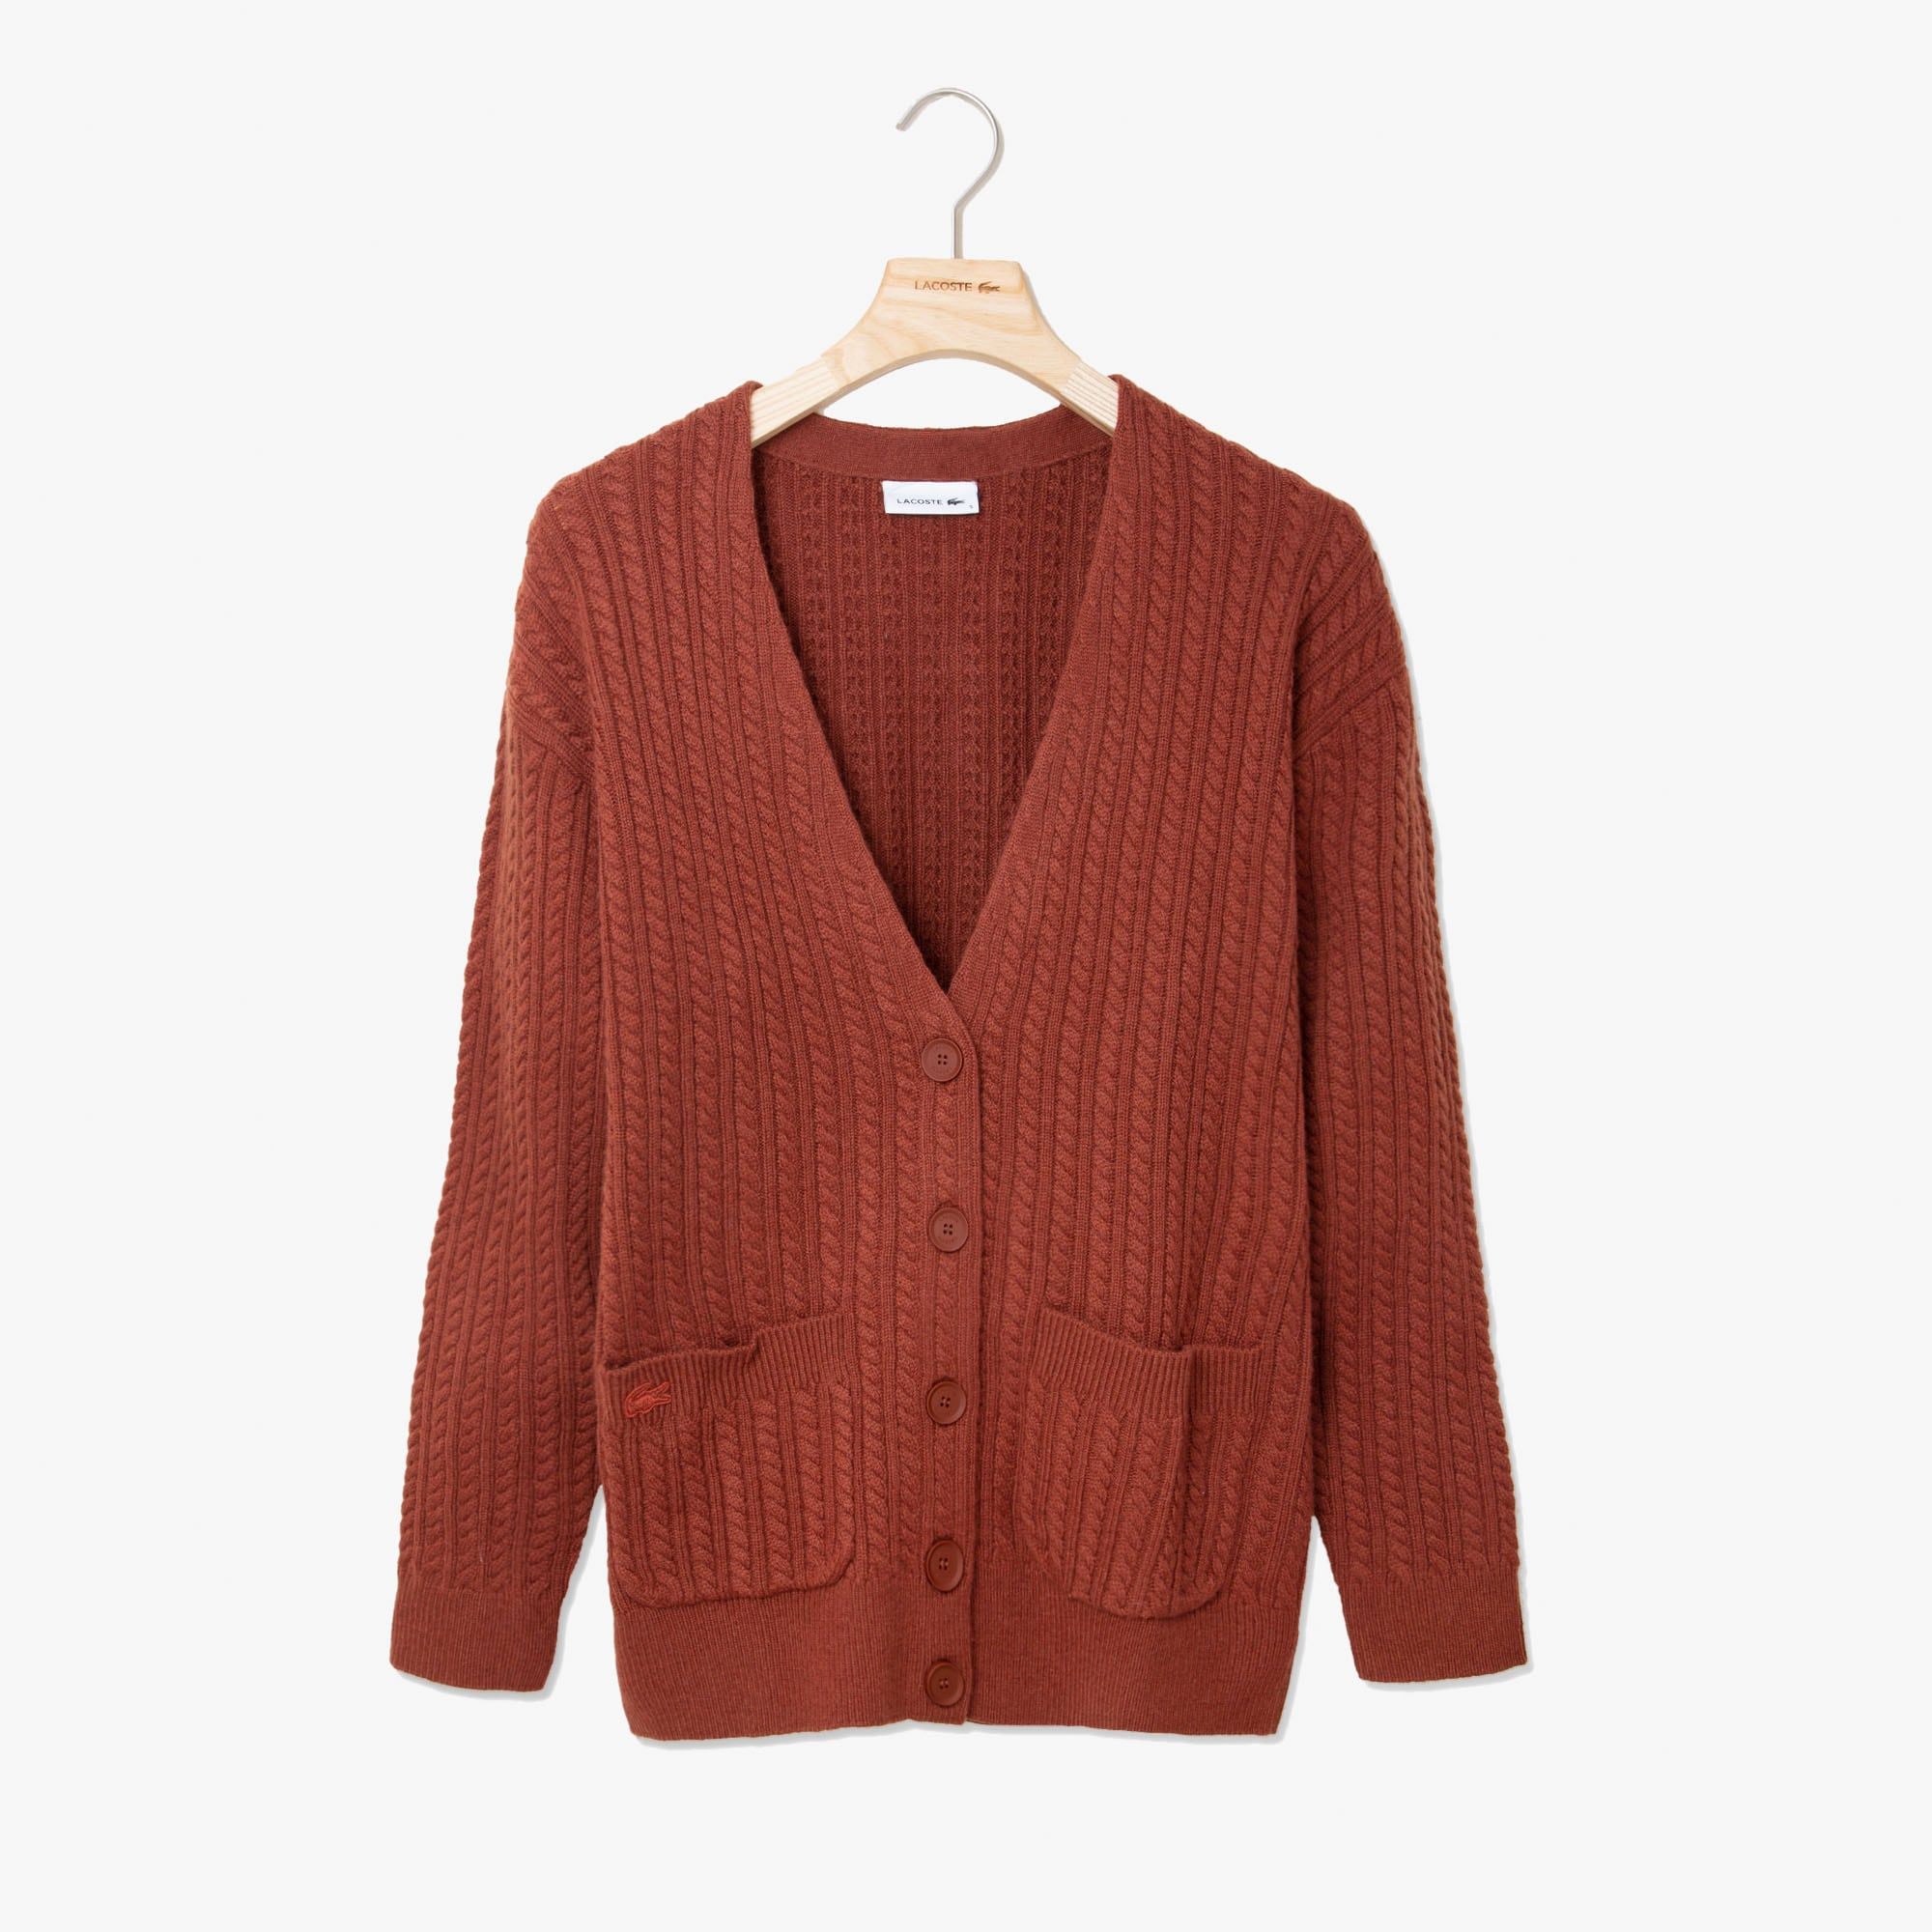 Lacoste Jackets Women's Wool And Cashmere Blend Cable Knit Cardigan